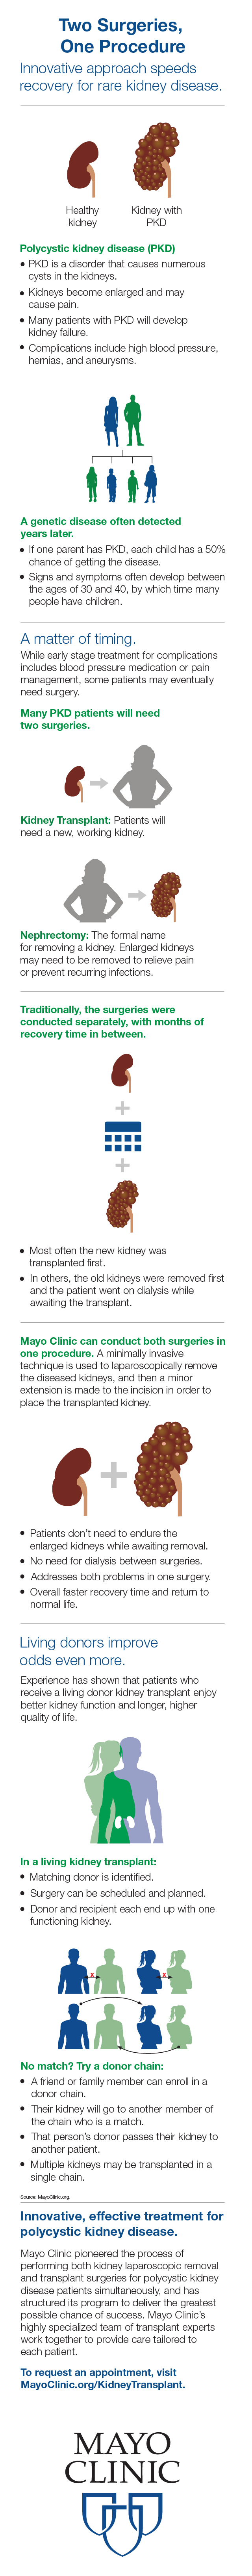 Infographic image for PKD